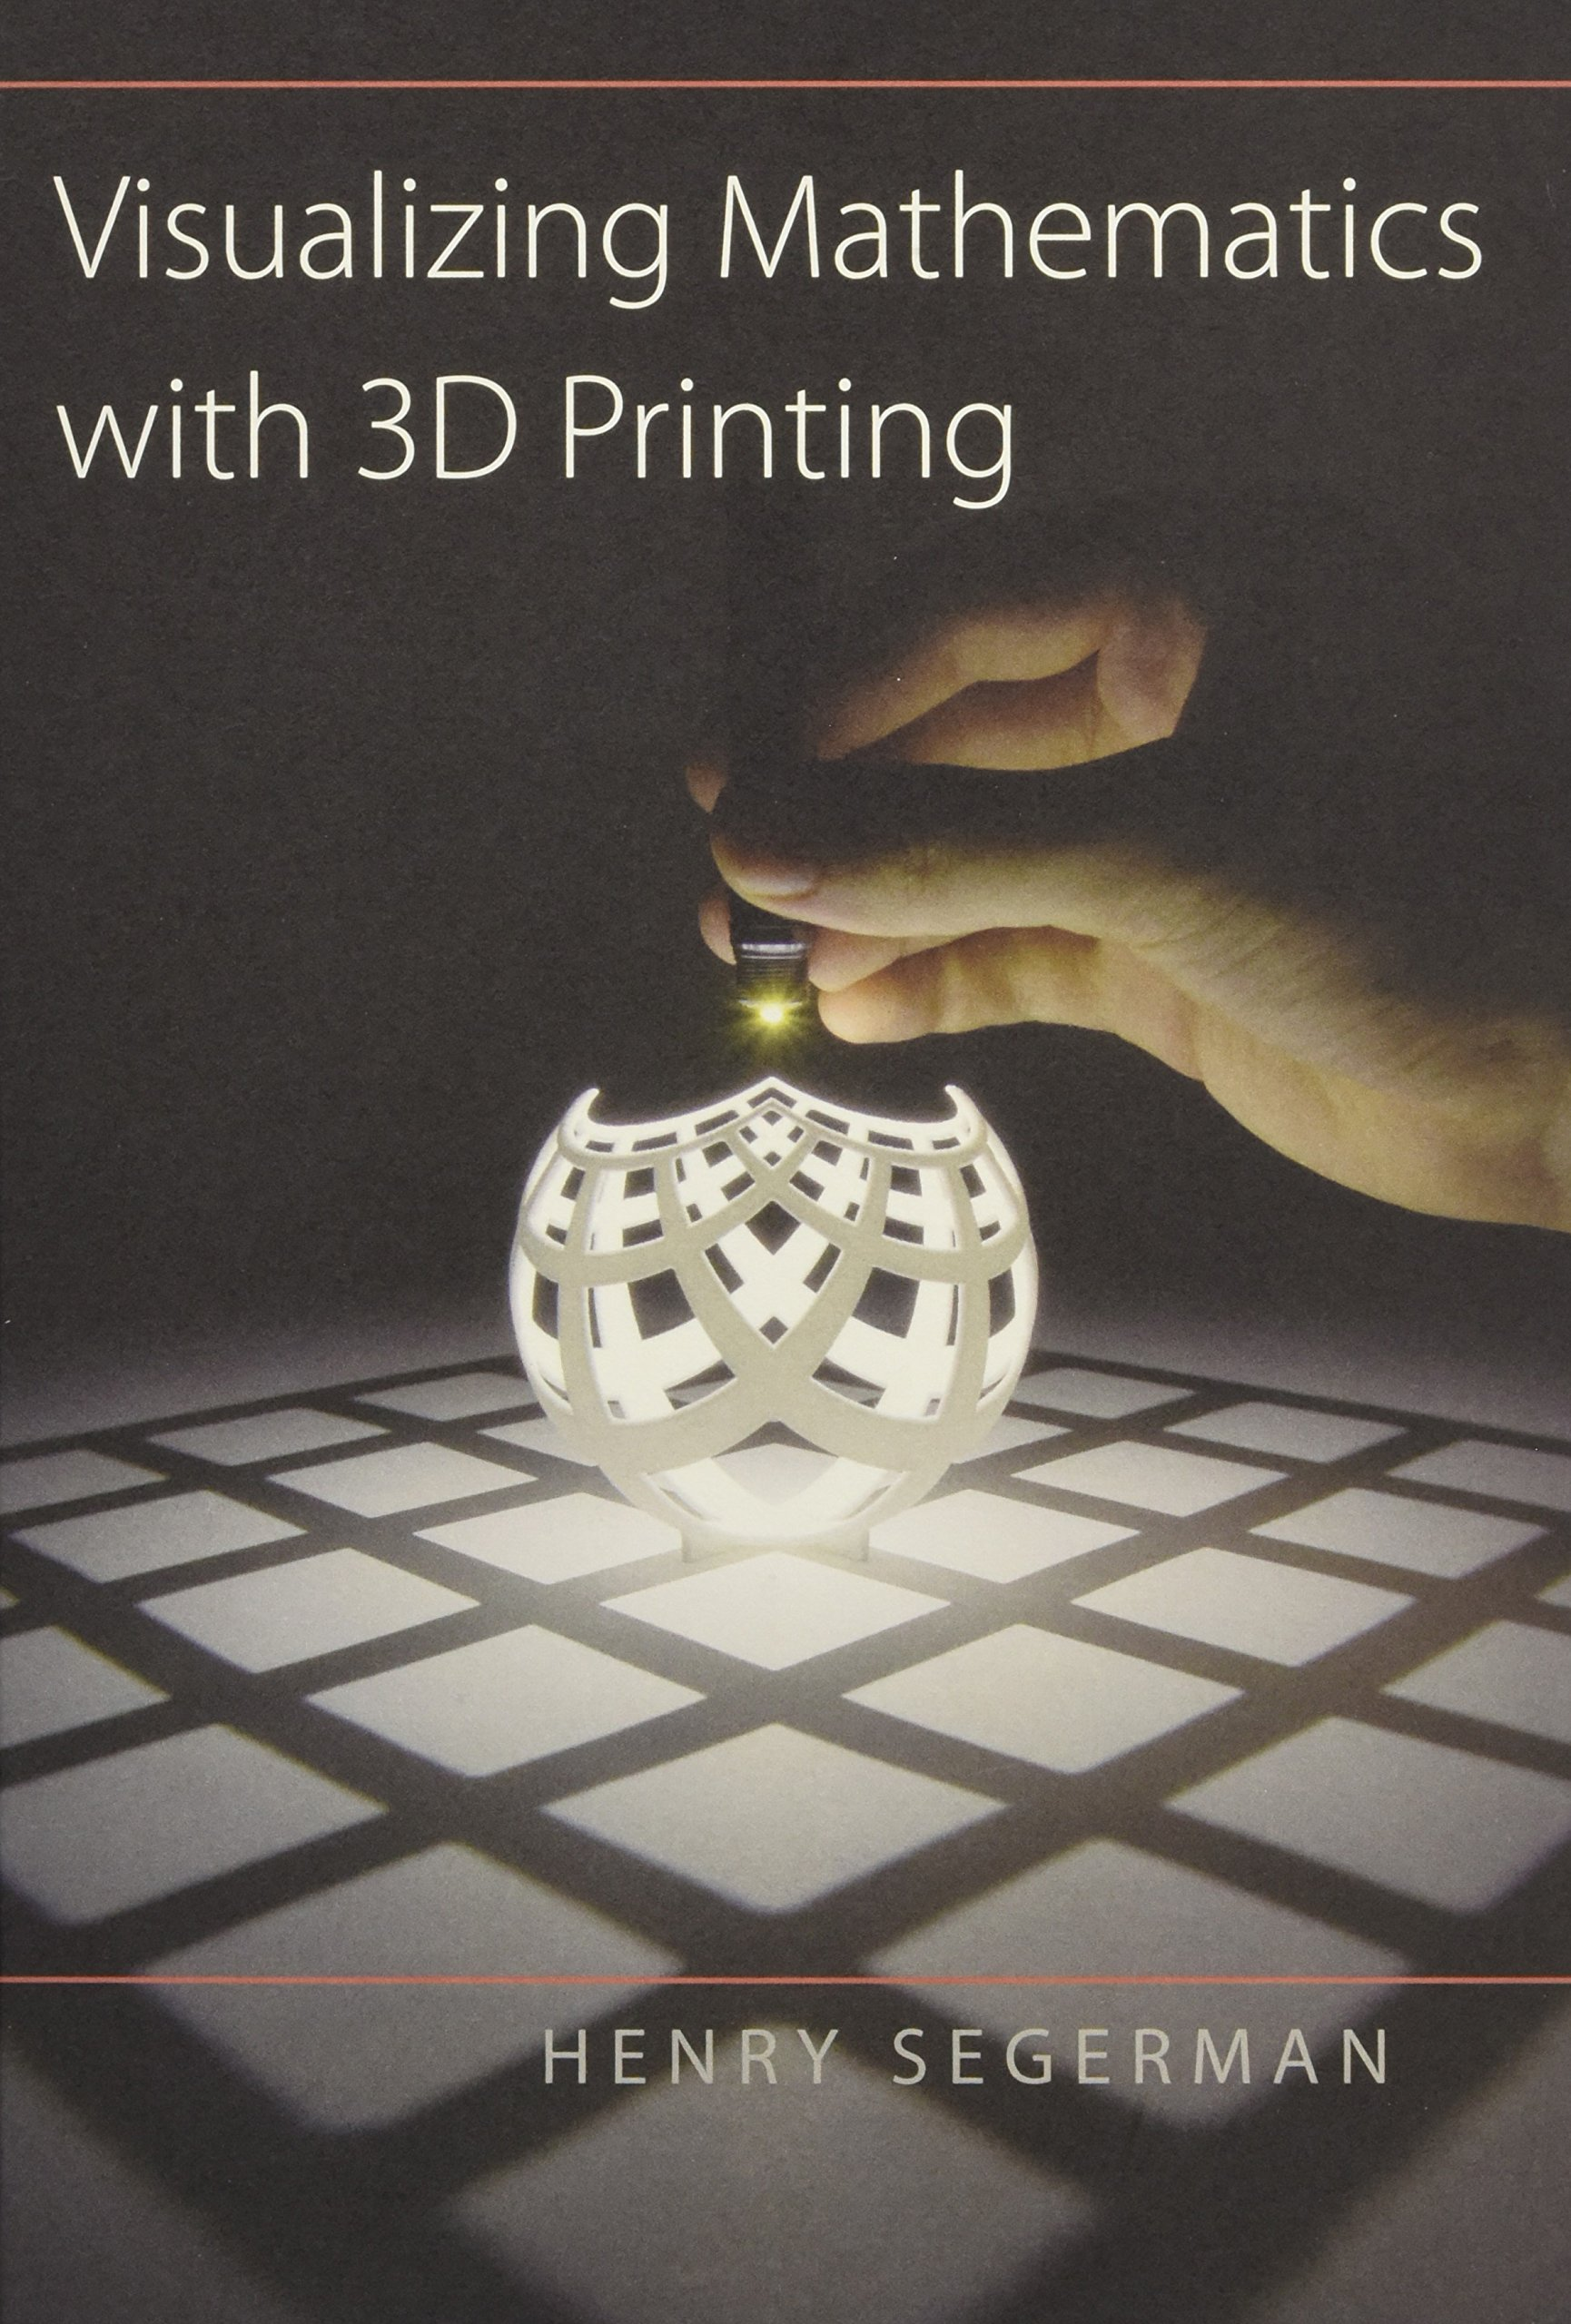 Visualizing Mathematics with 3D Printing